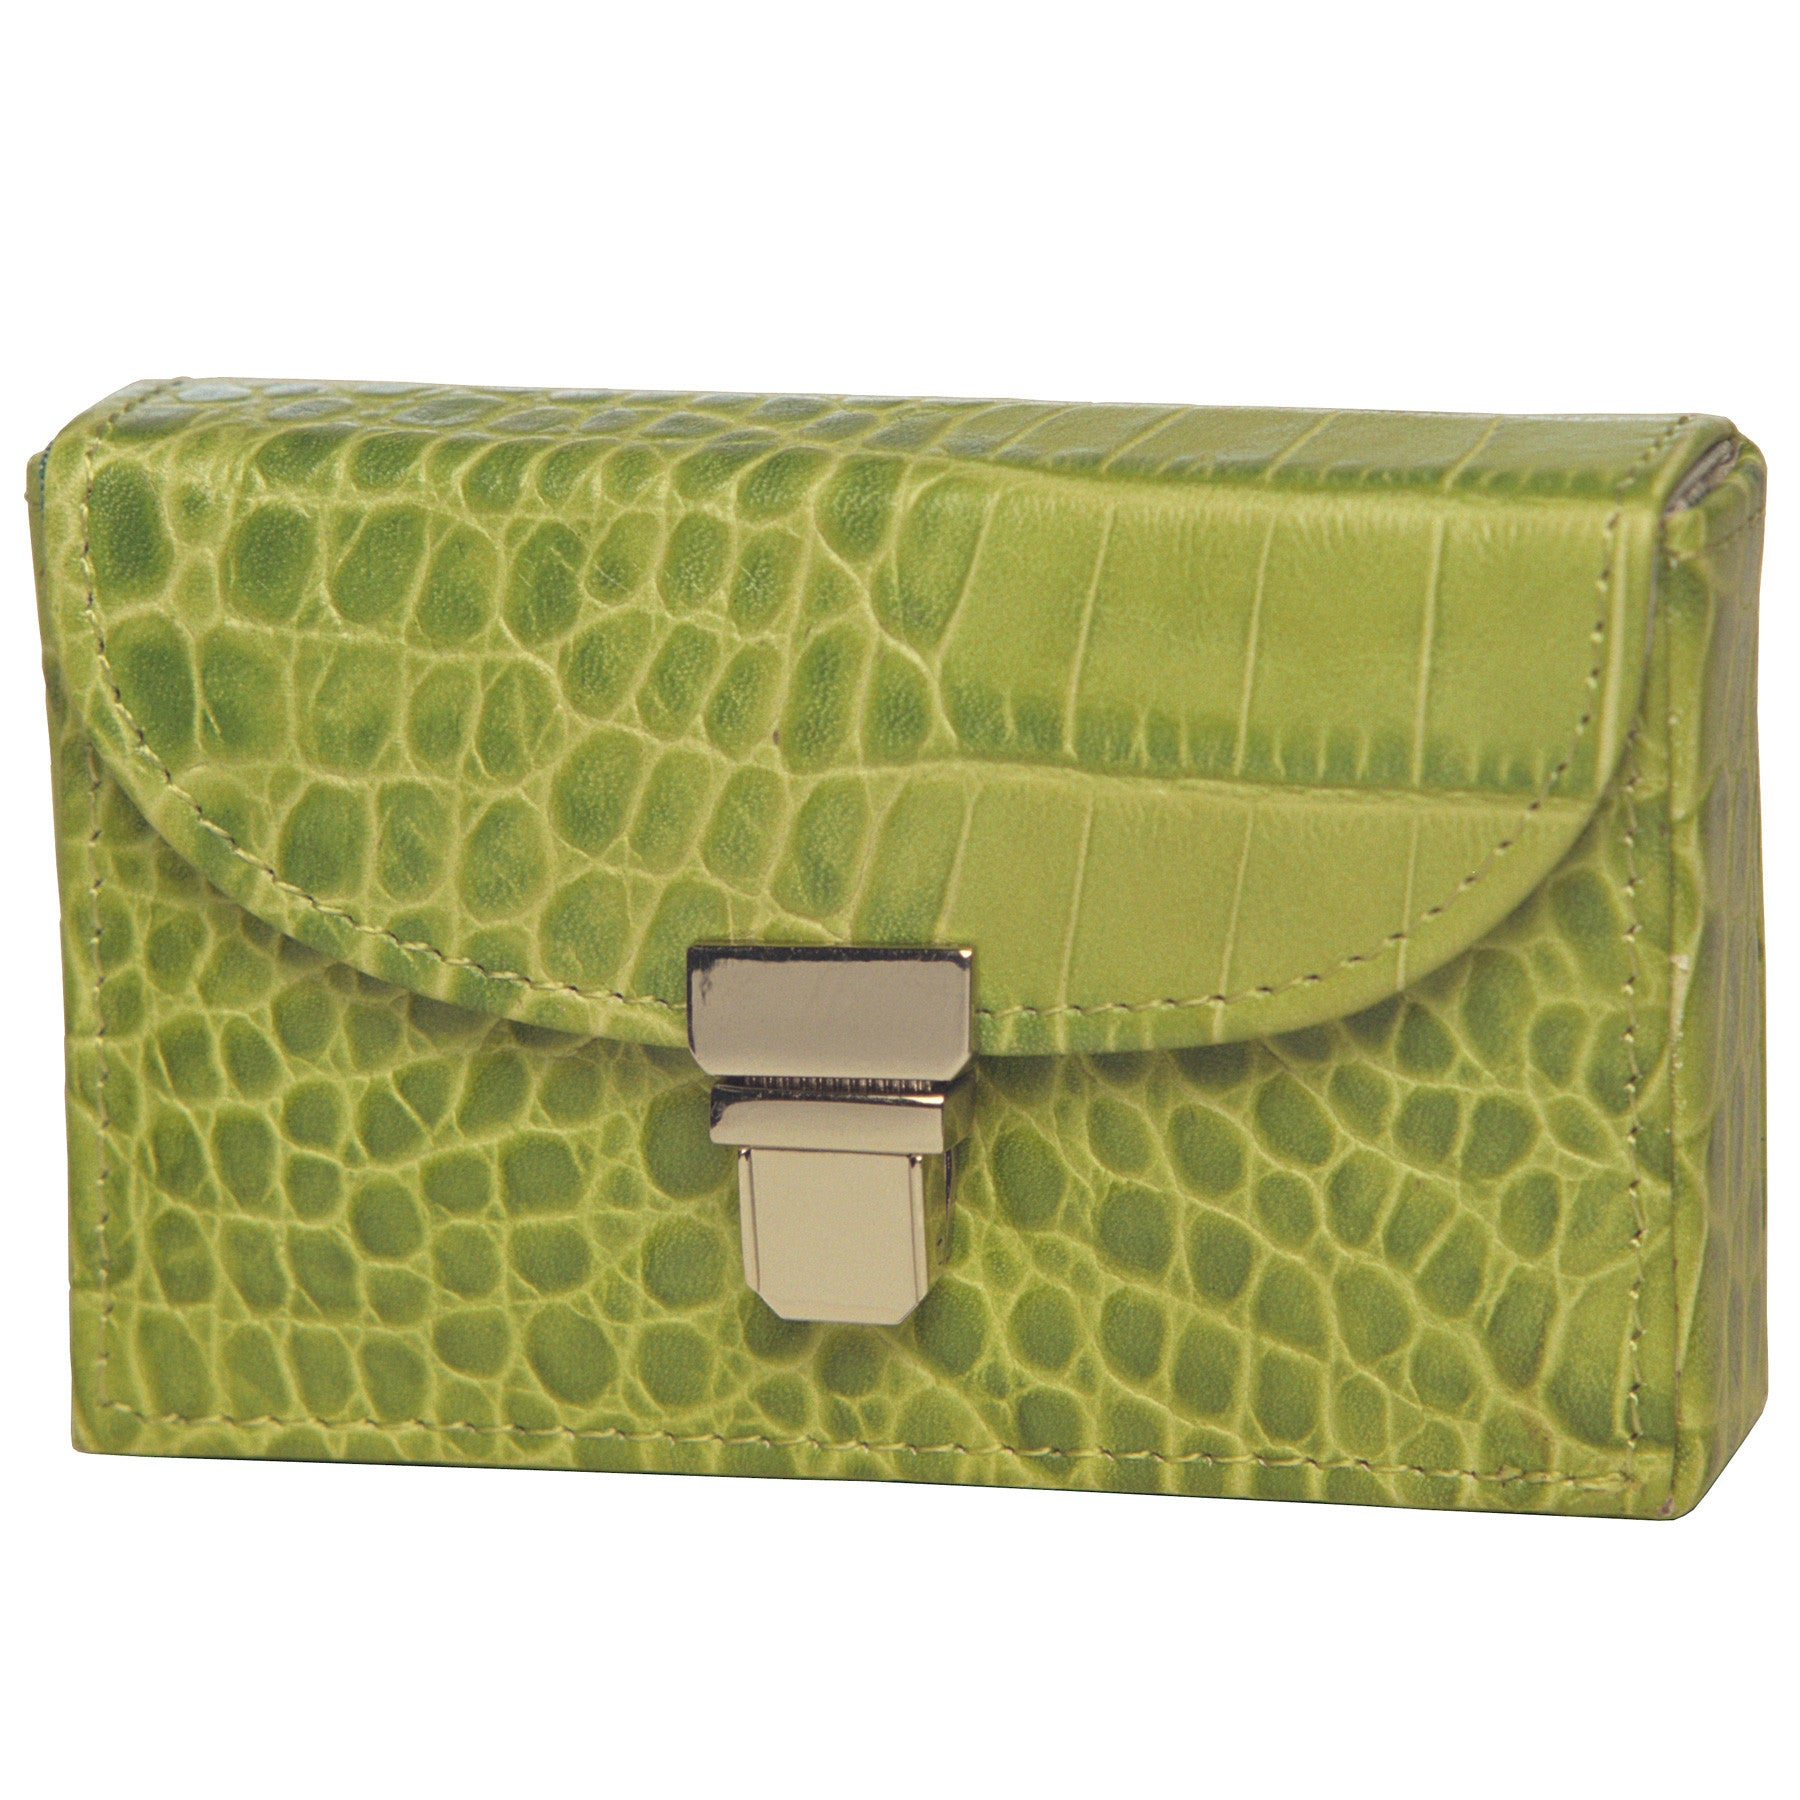 Alicia Klein leather card holder, turtle green croco print